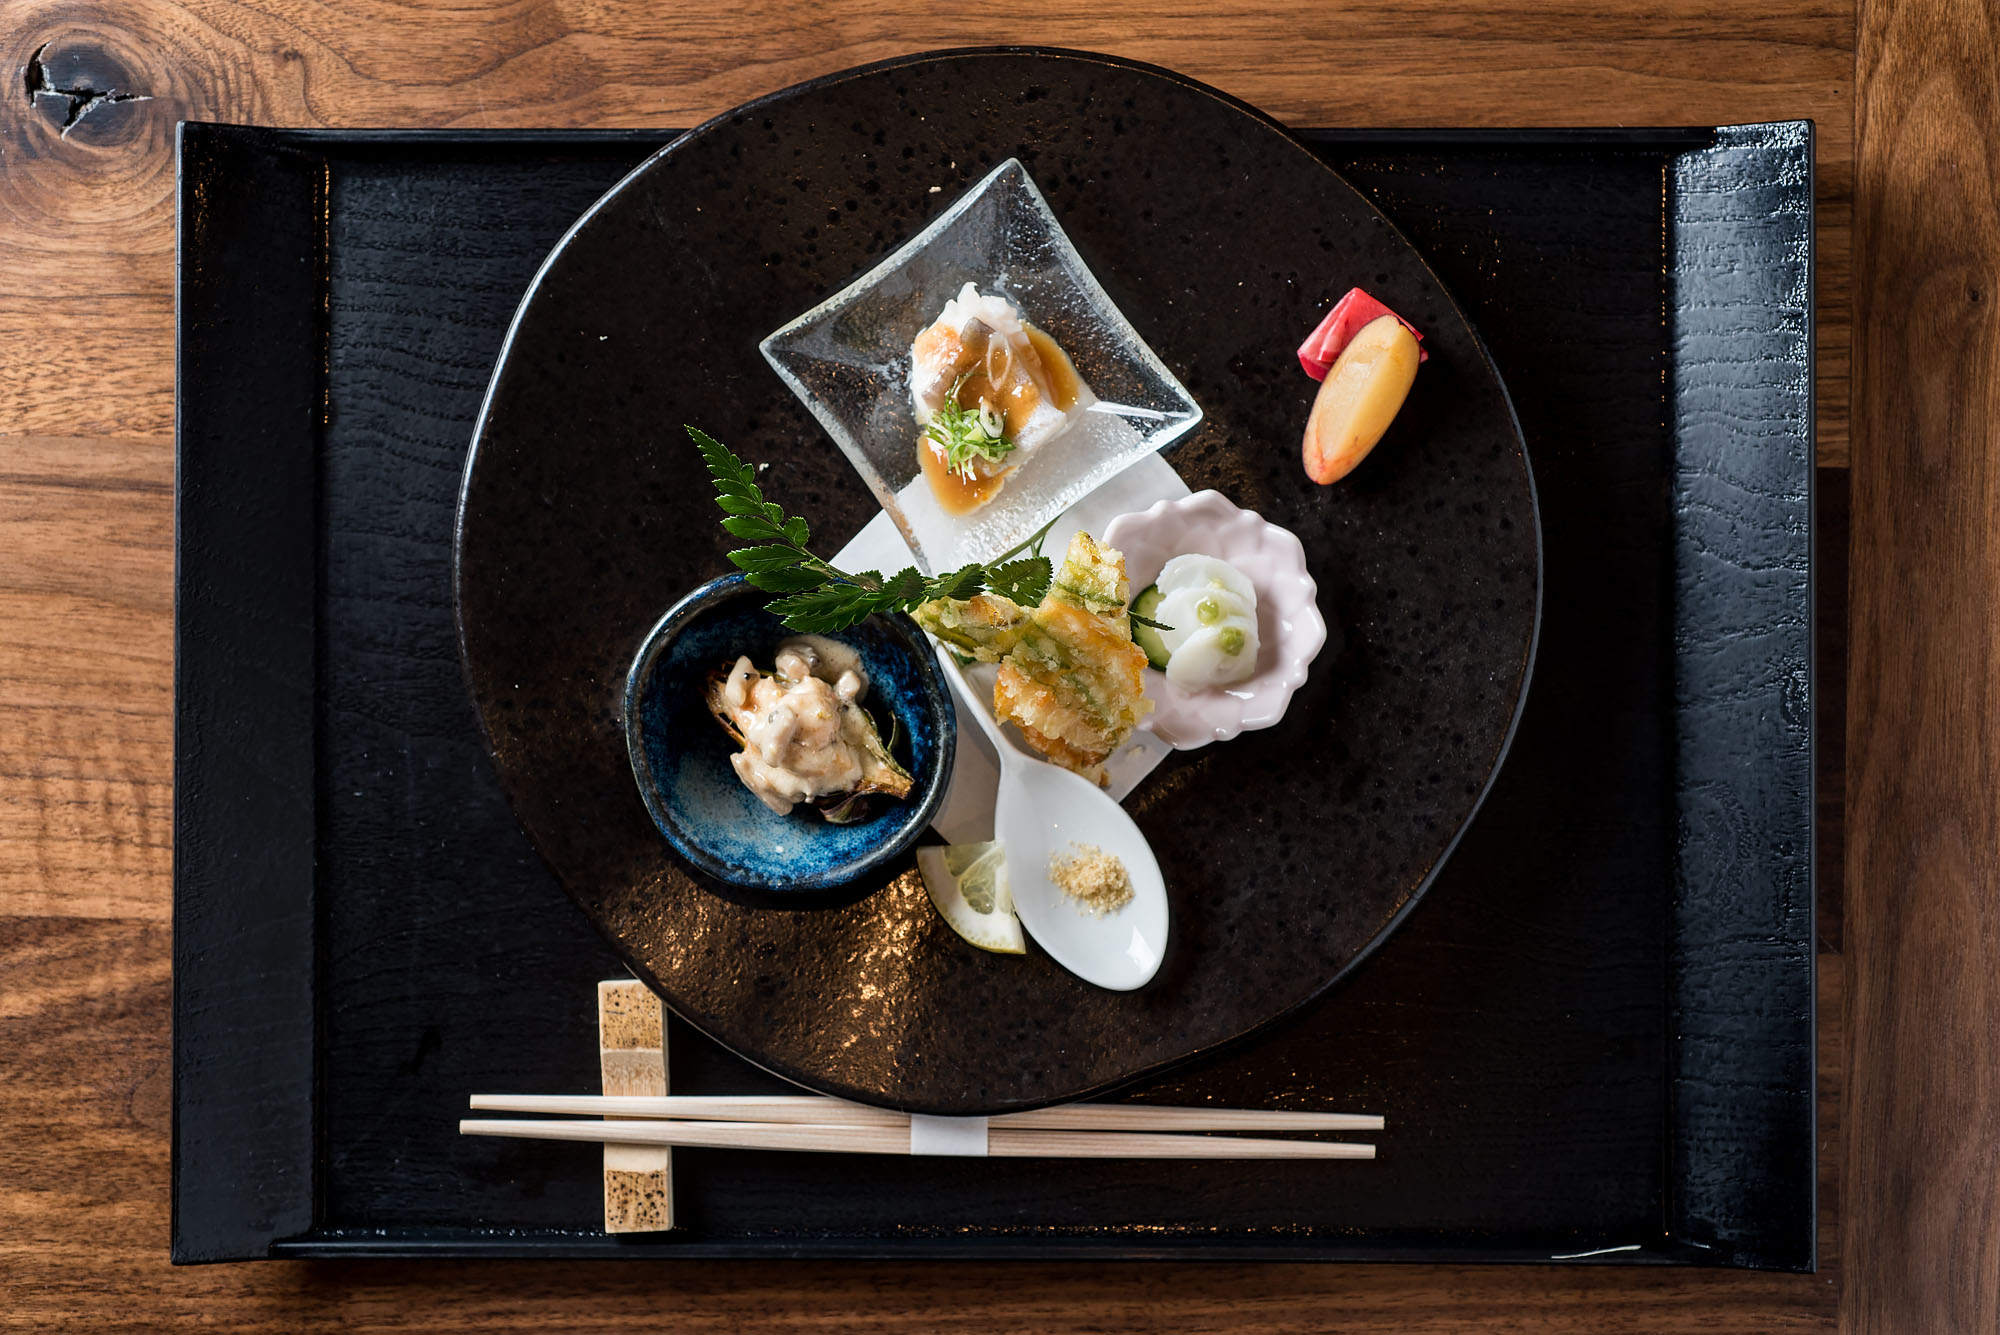 Dishes as part of the kaiseki meal at N/Naka in Los Angeles